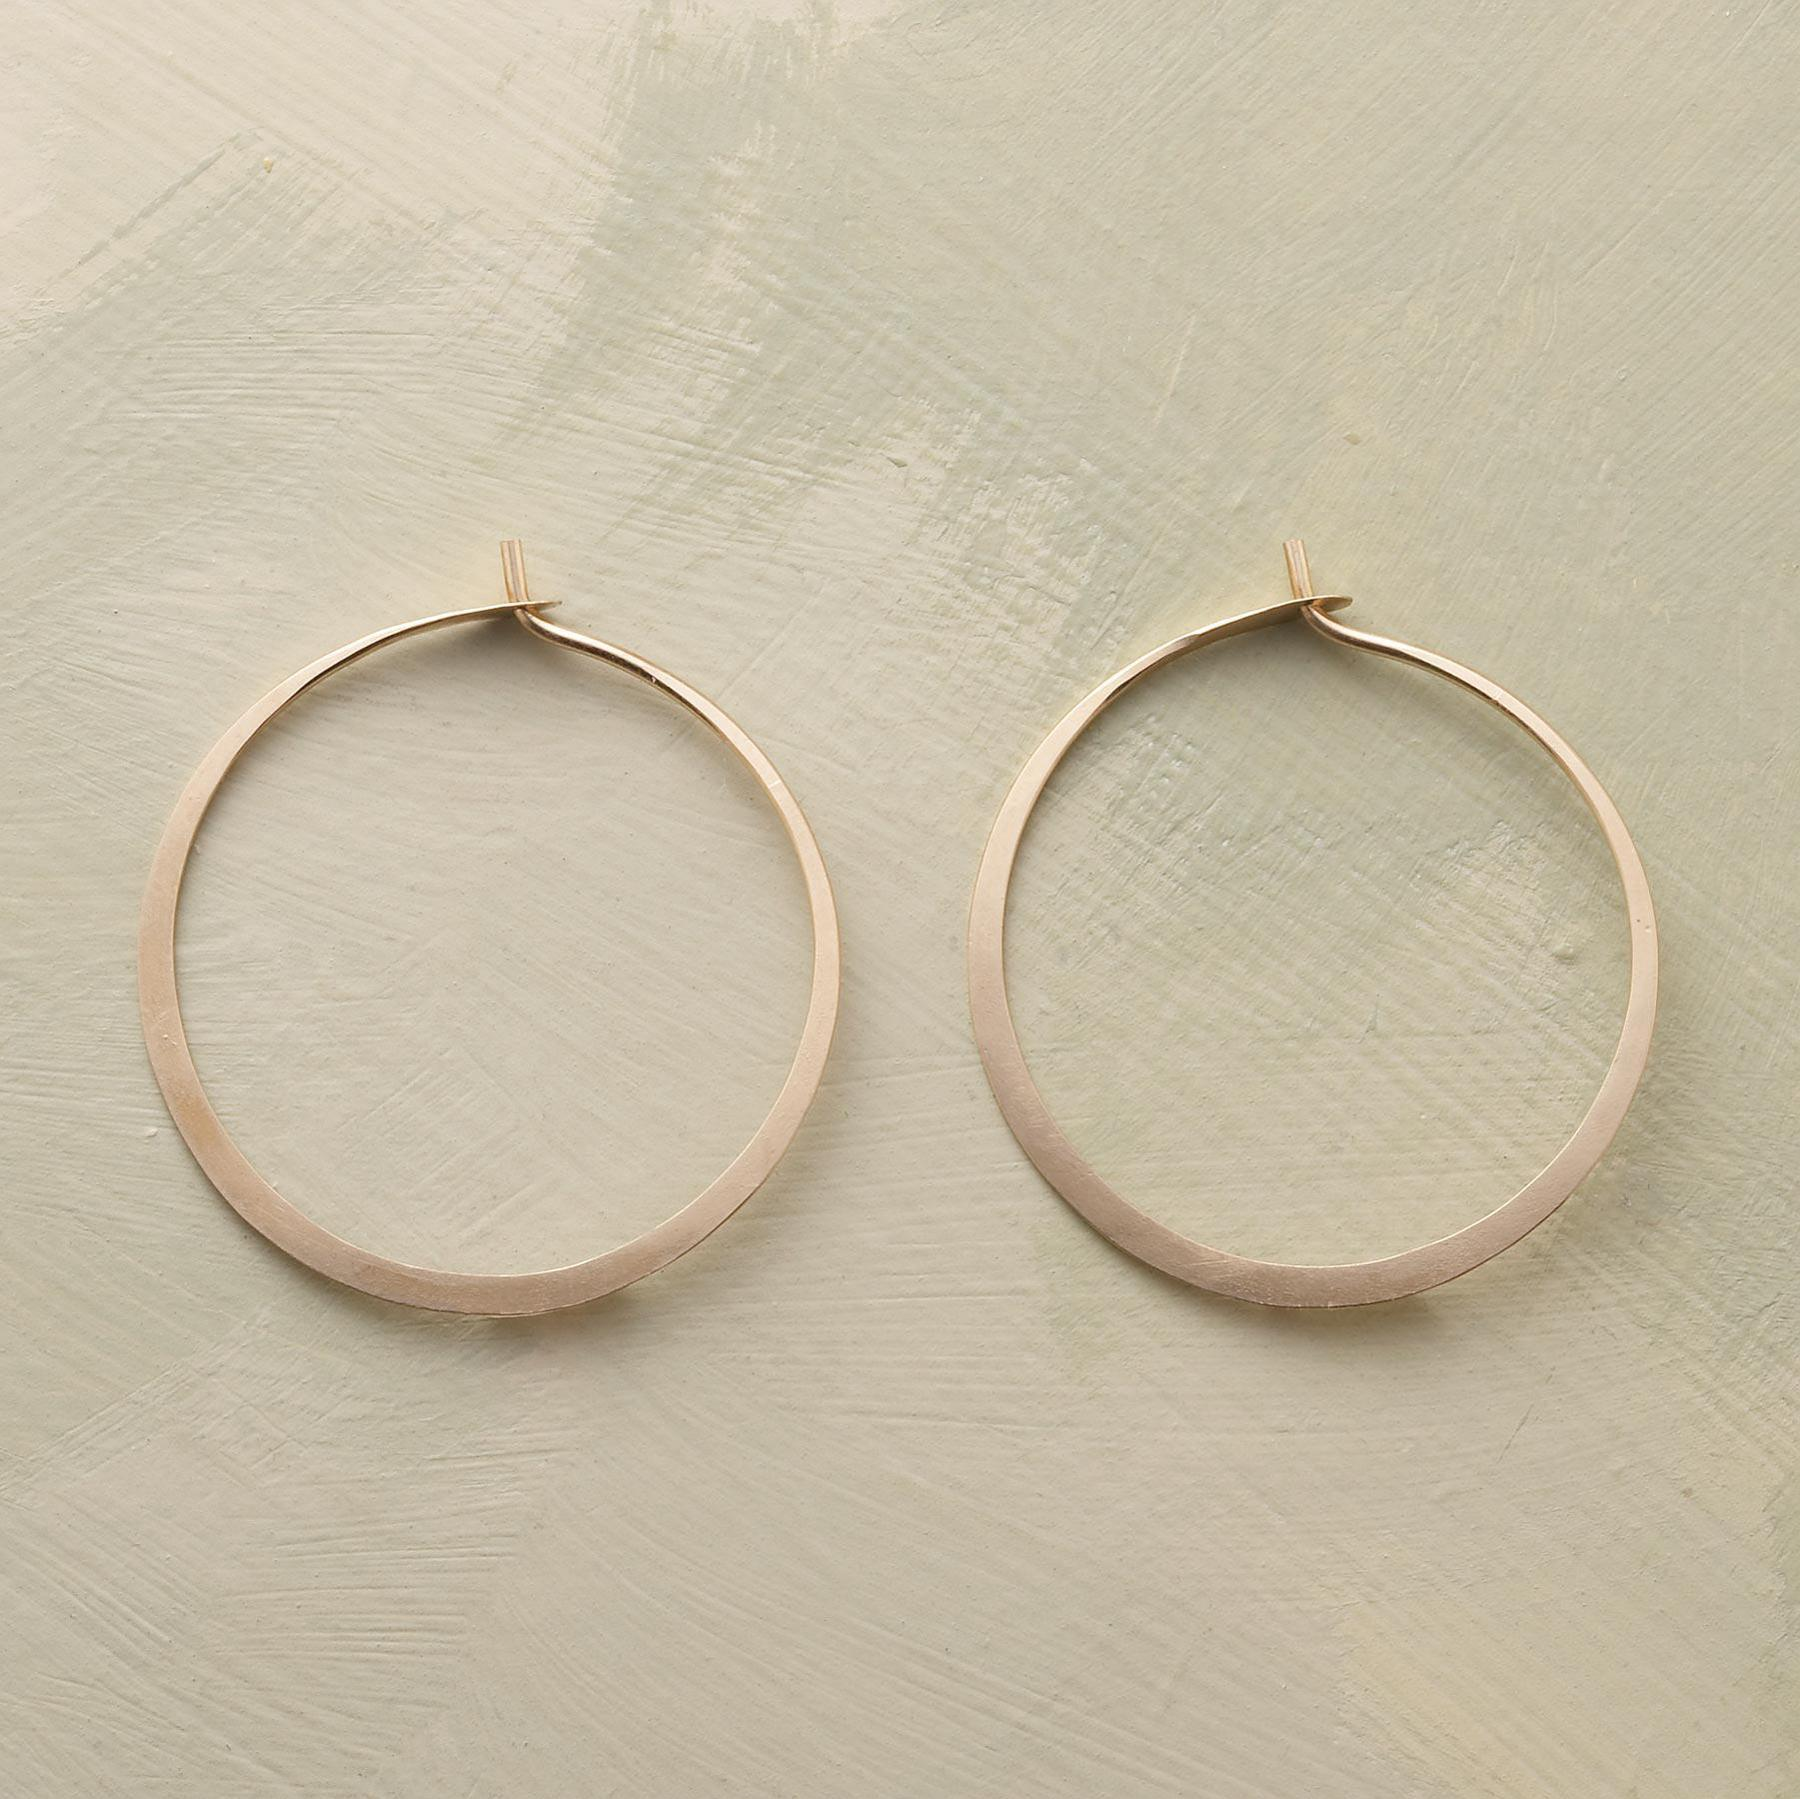 Hand Forged Gold Hoop Earrings